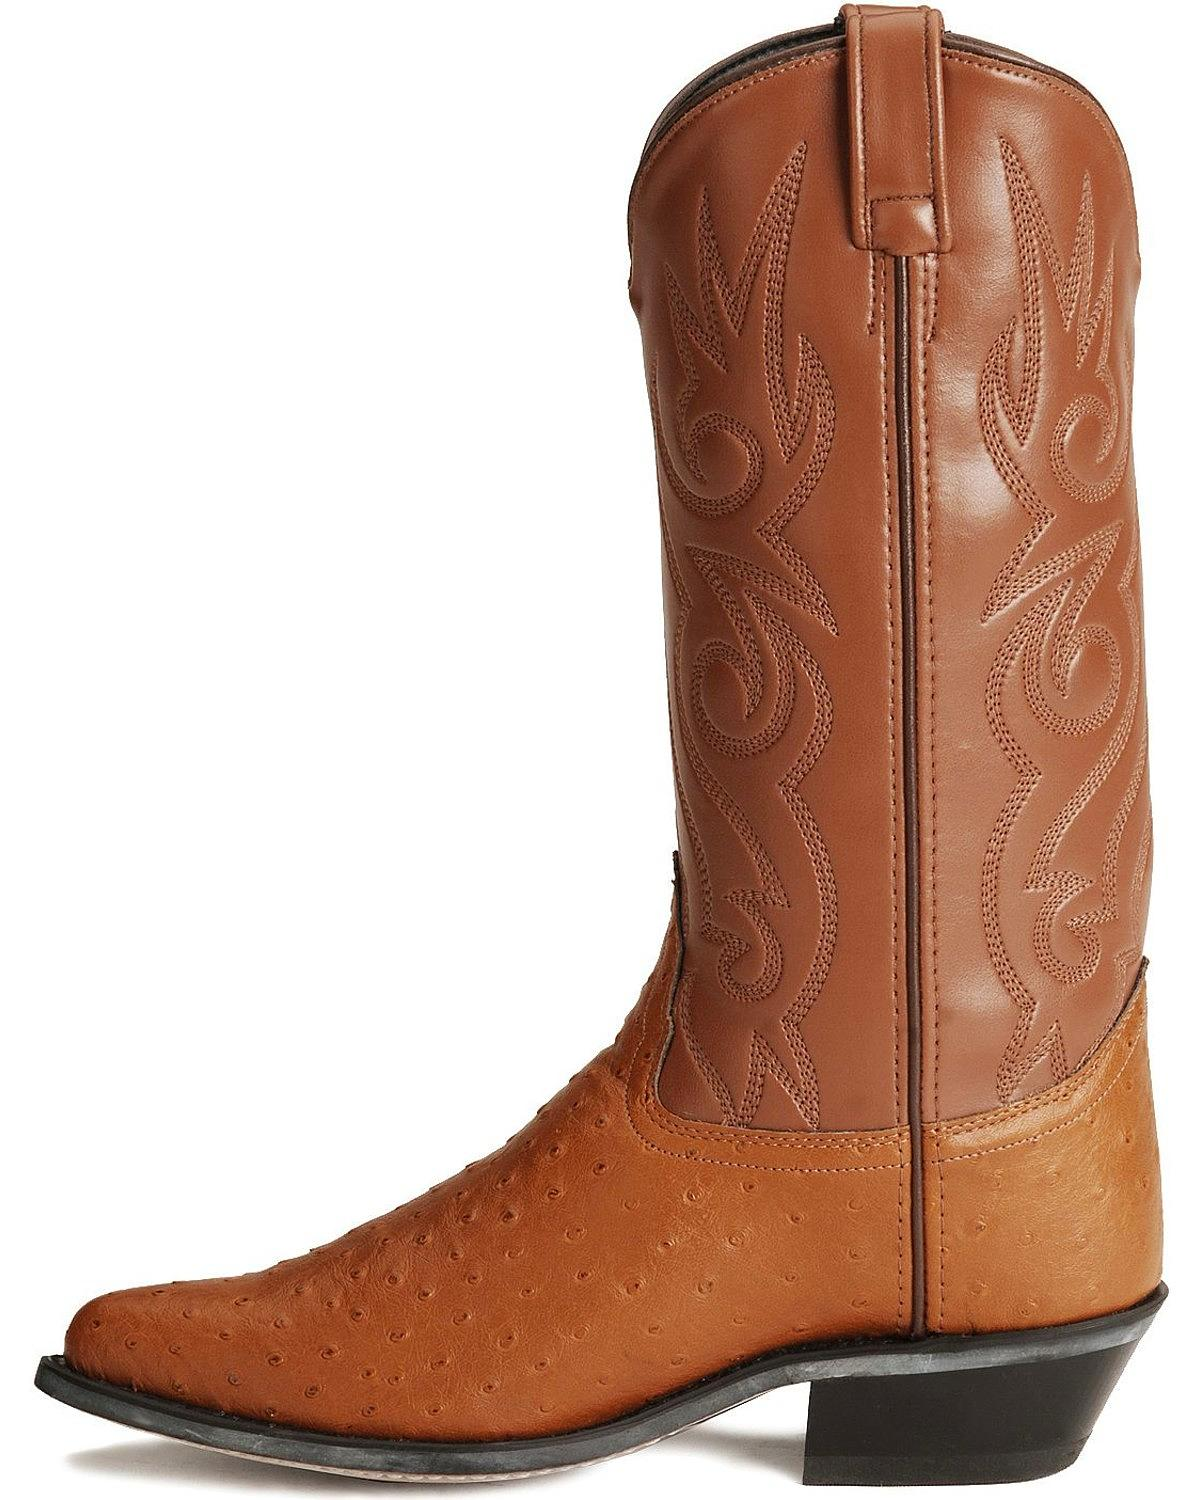 Old West Men's Fancy Stitched Ostrich Print Cowboy Boot